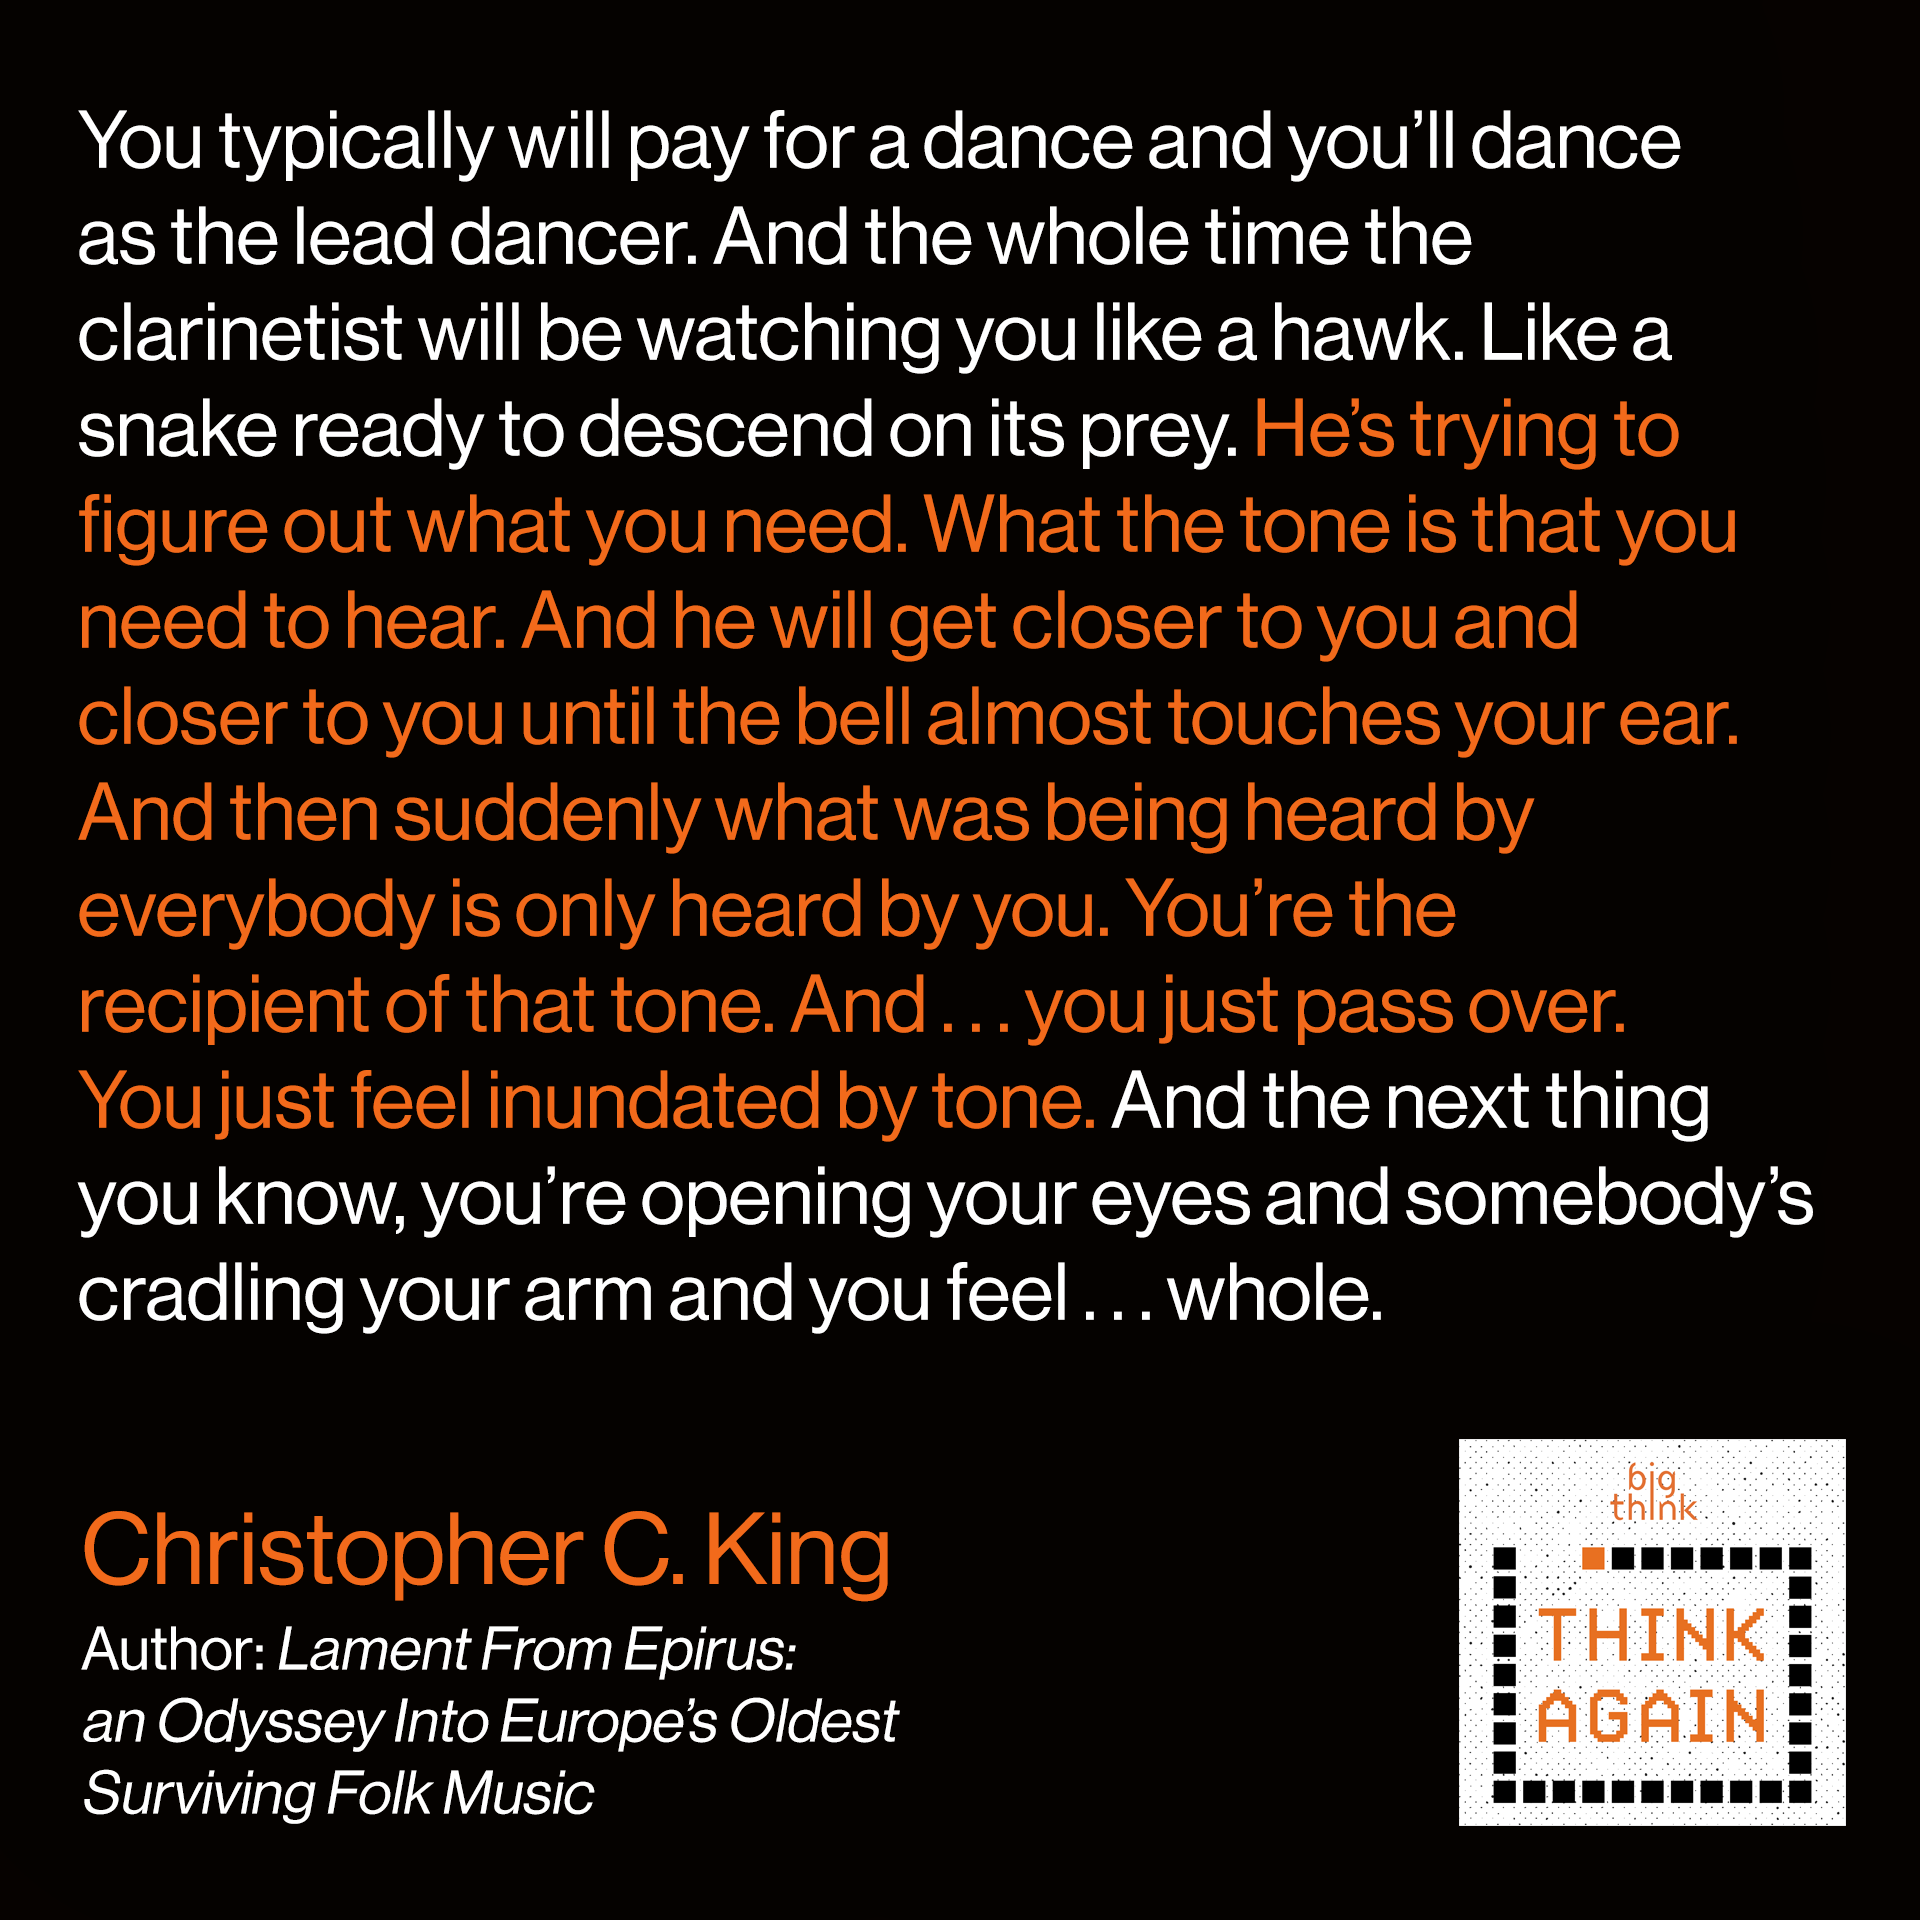 Chris King Quote: You typically will pay for a dance and you'll dance as the lead dancer. And the whole time the clarinetist will be watching you like a hawk. Like a snake ready to descend on its prey. He's trying to figure out what you need. What the tone is that you need to hear. And he will get closer to you and closer to you until the bell almost touches your ear. And then suddenly what was being heard by everybody is only heard by you. You're the recipient of that tone. And . . . you just pass over. You just feel inundated by tone. And the next thing you know, you're opening your eyes and somebody's cradling your arm and you feel . . . whole.